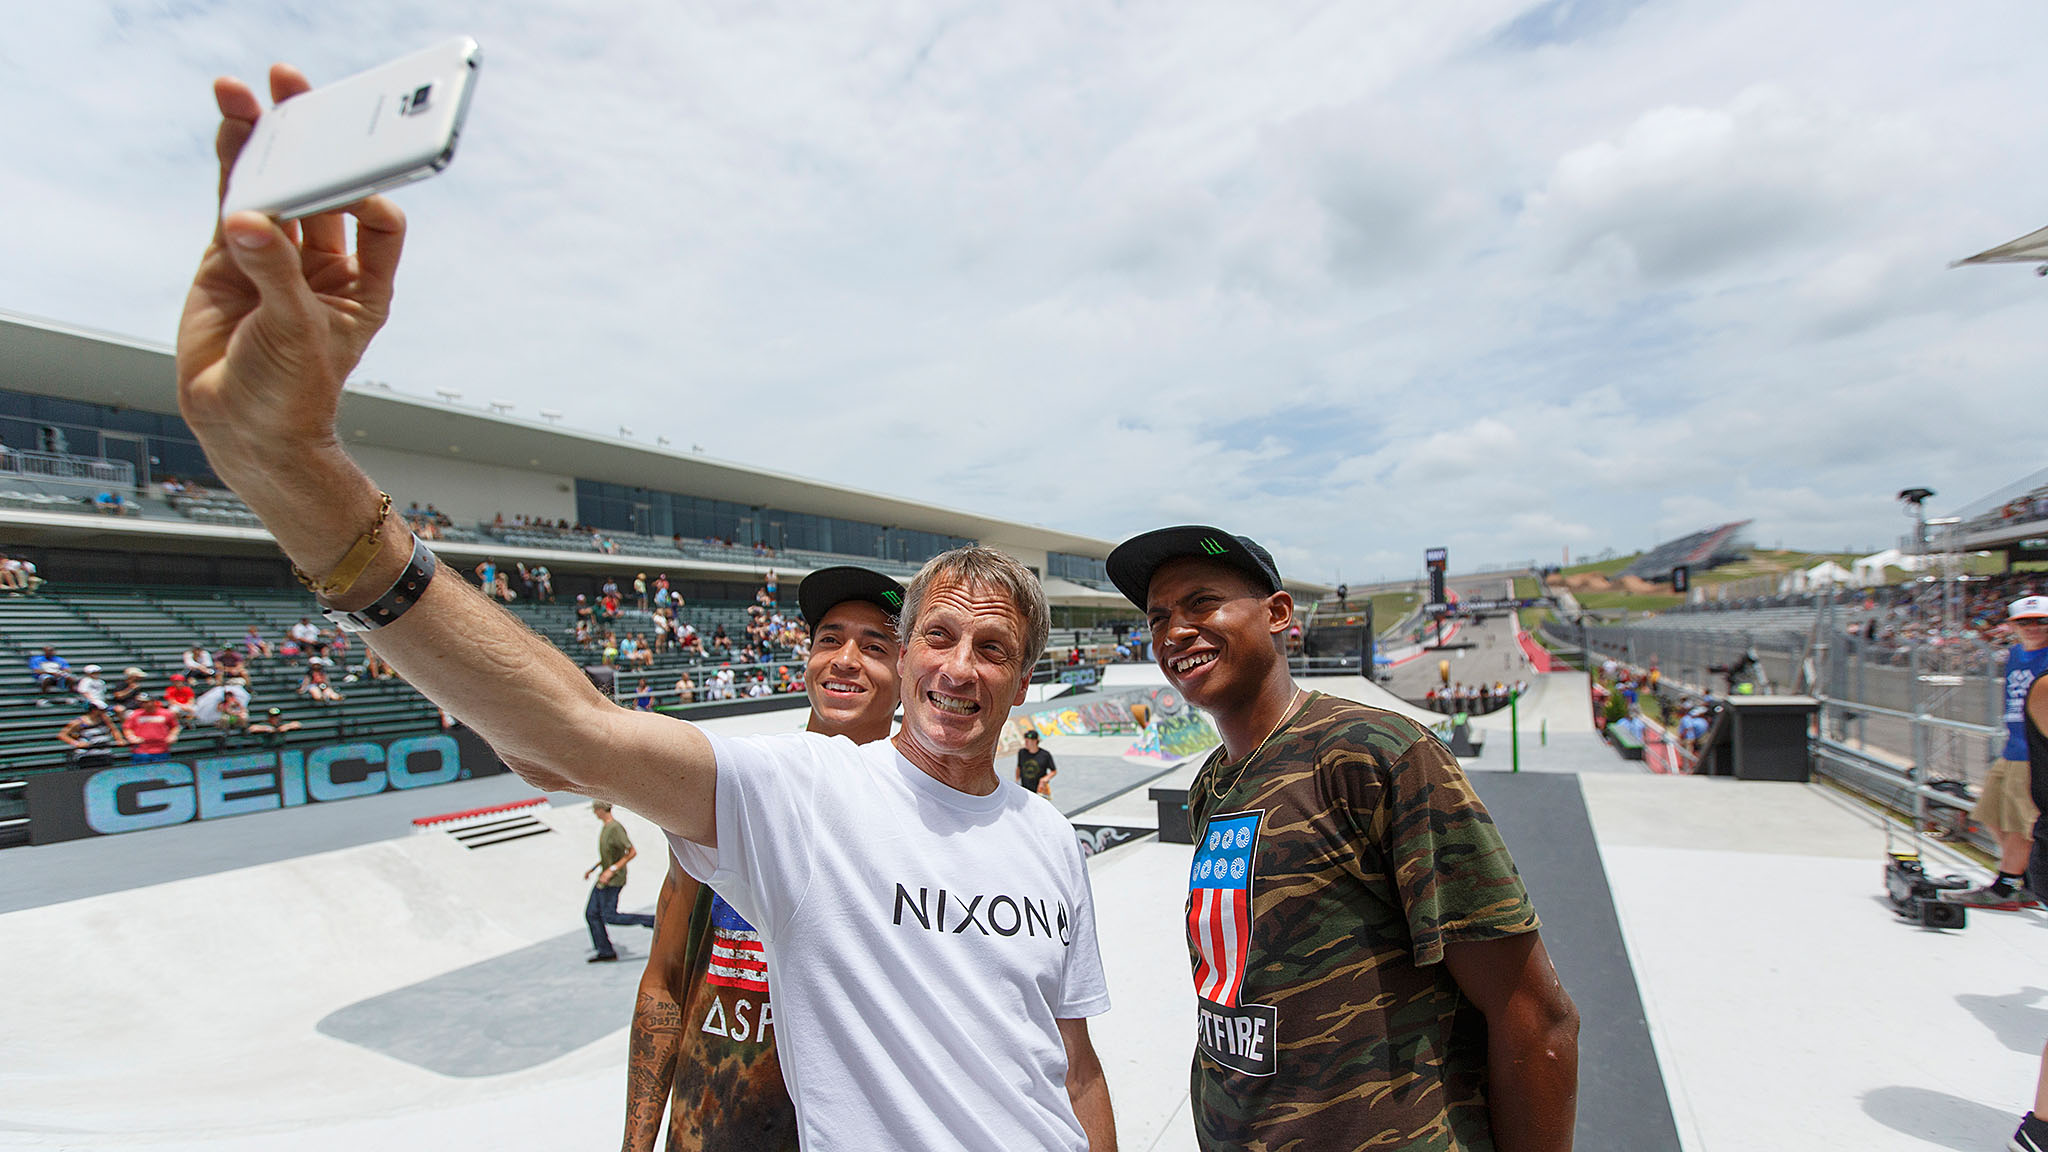 Tony Hawk added photos of Kanye West, Kim Kardashian and Women's Skateboard Street gold medalist Lacey Baker to his very active Instagram account, along with this selfie with six-time Men's Skateboard Street gold medalist Nyjah Huston and Thrasher Magazine's 2013 Skater of the Year Ishod Wair. Hawk won the very first Skater of the Year nod back in 1990. Huston's still waiting for his.